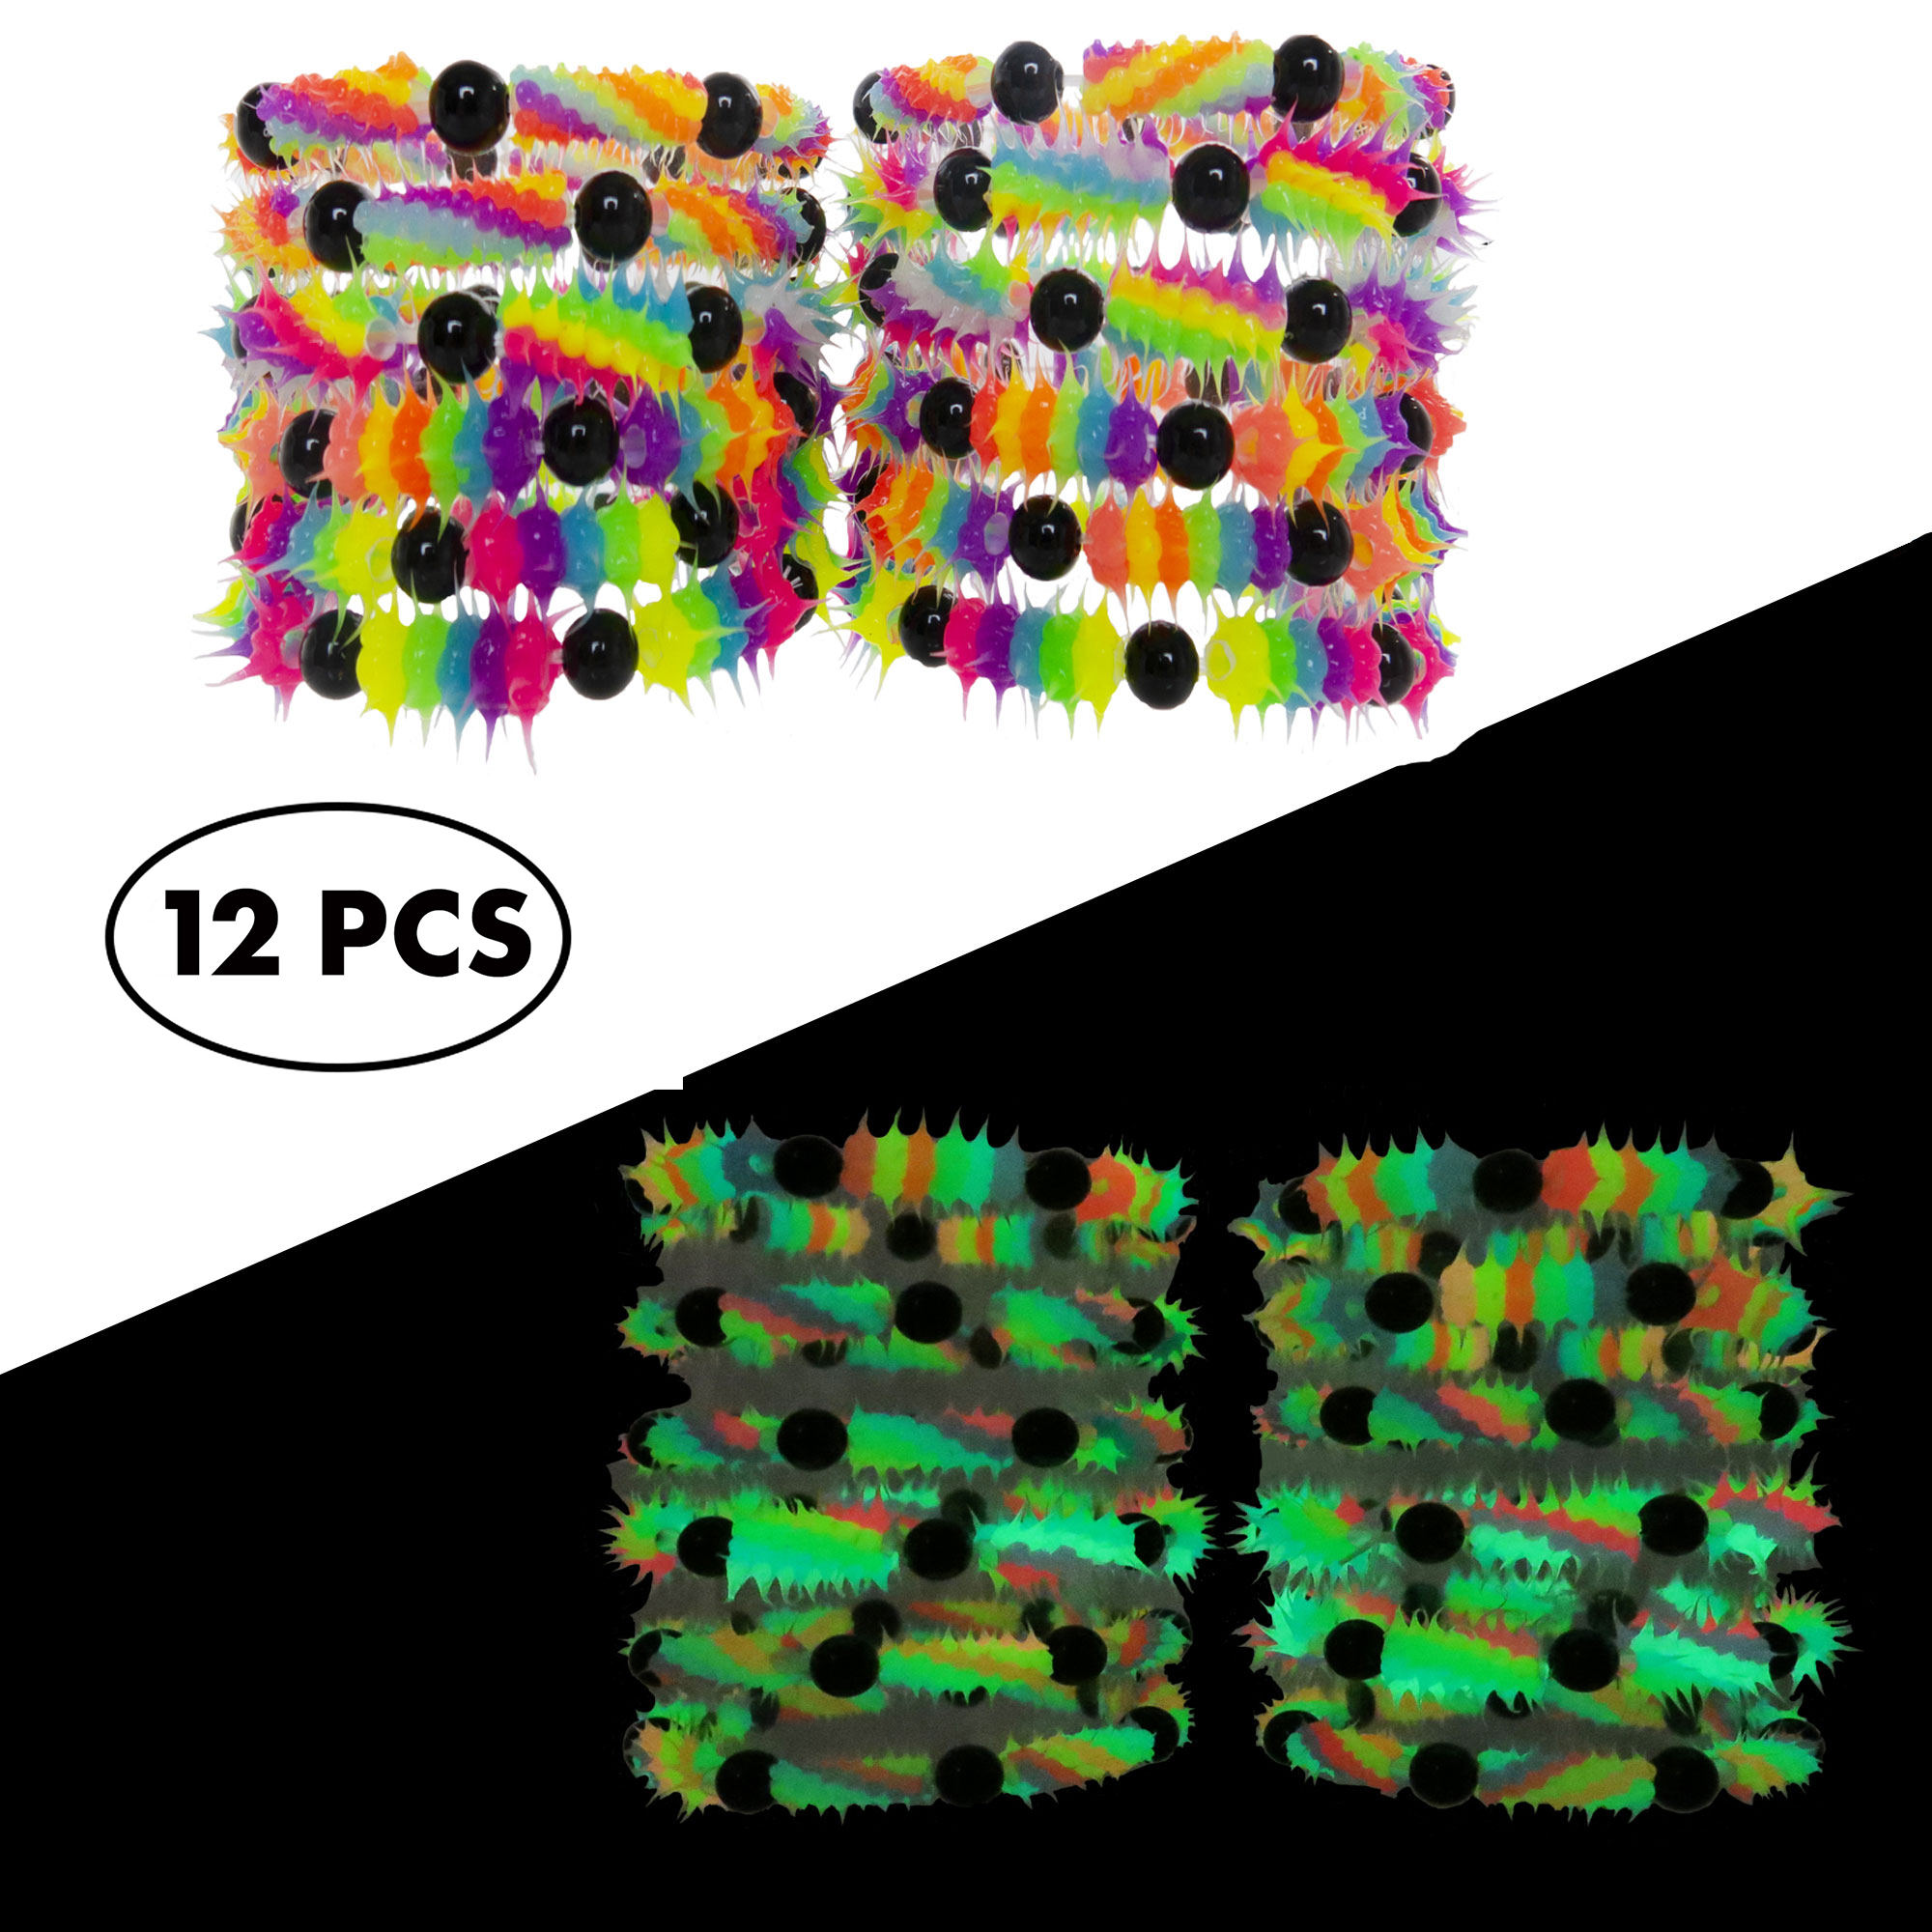 FROG SAC Glow in The Dark Bracelets for Boys Girls Teens Kids 12 PCs Pack - Fluorescent and UV Led Black Light Reactive Neon Rave Beaded Stretch Bracelet Toy Set - Party Favors and Supplies